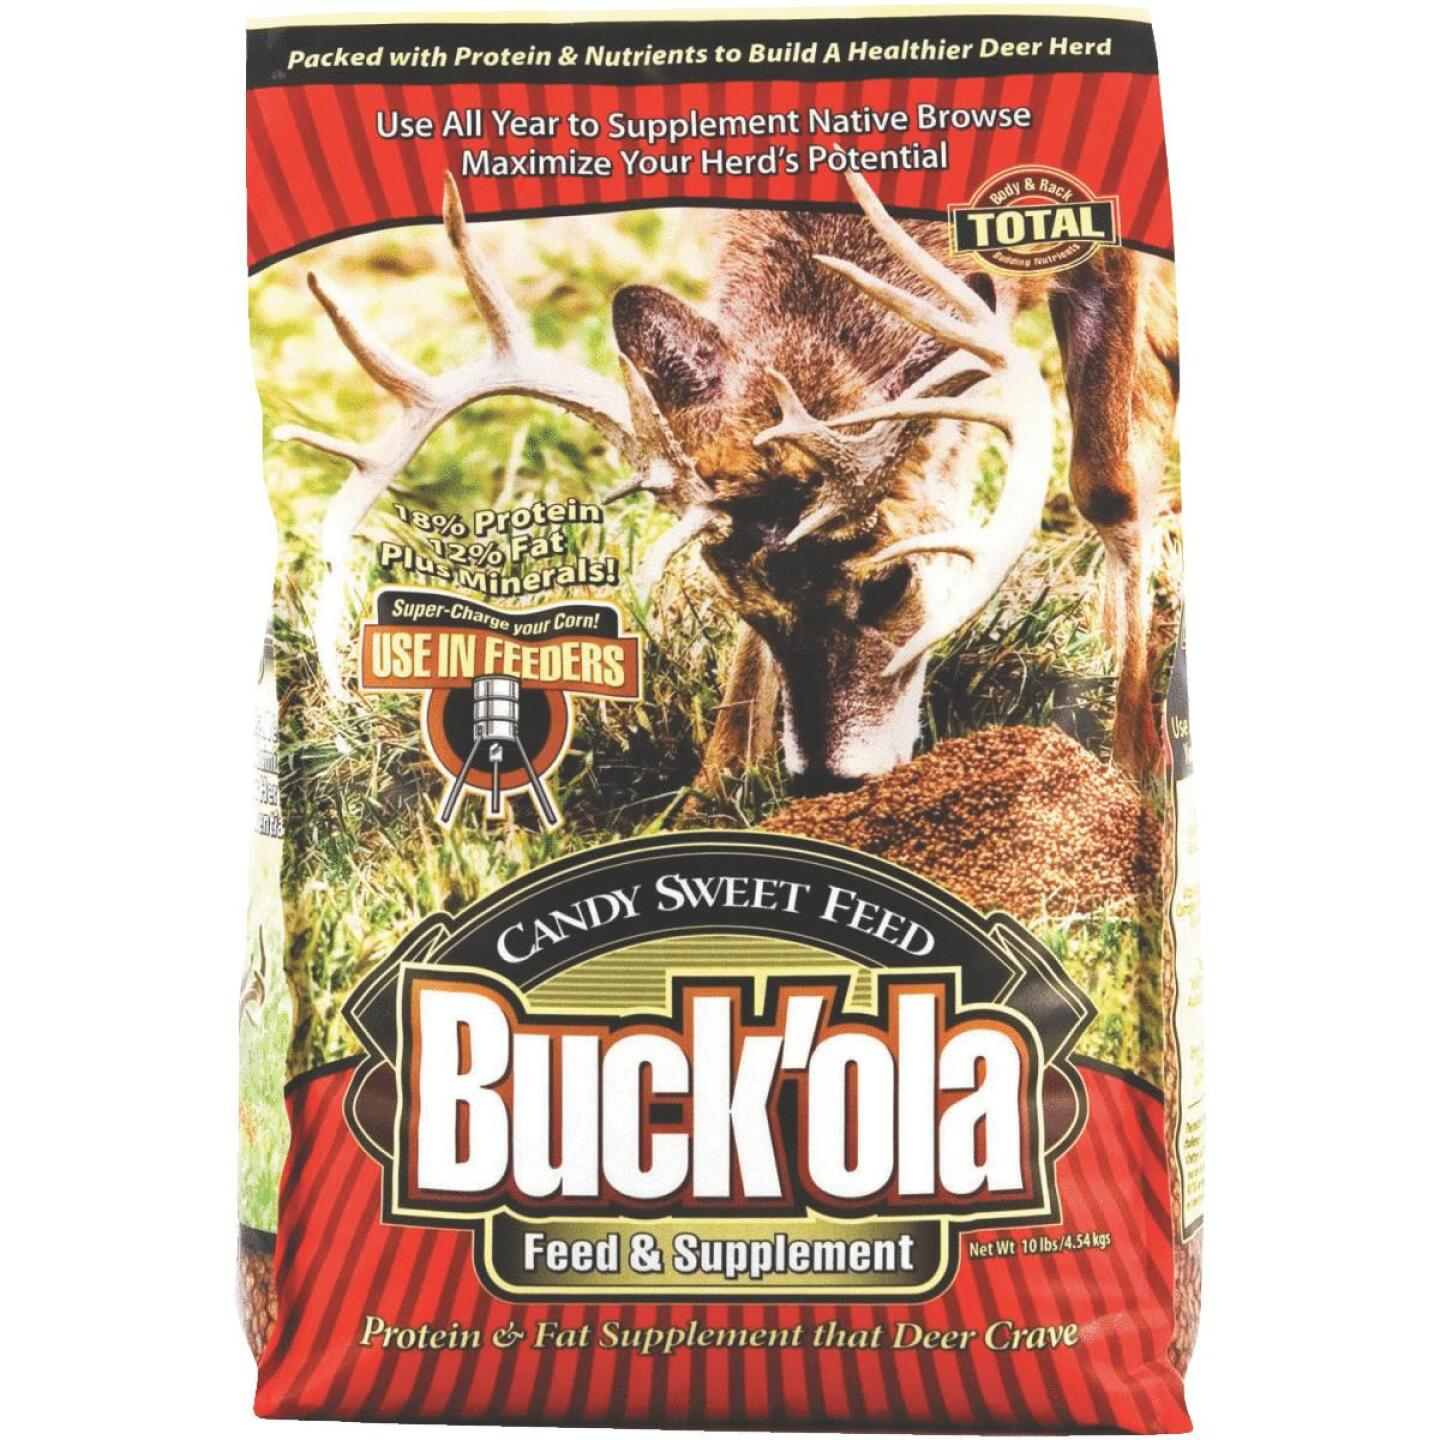 20LB BUC FEED ATTRACTANT Image 1